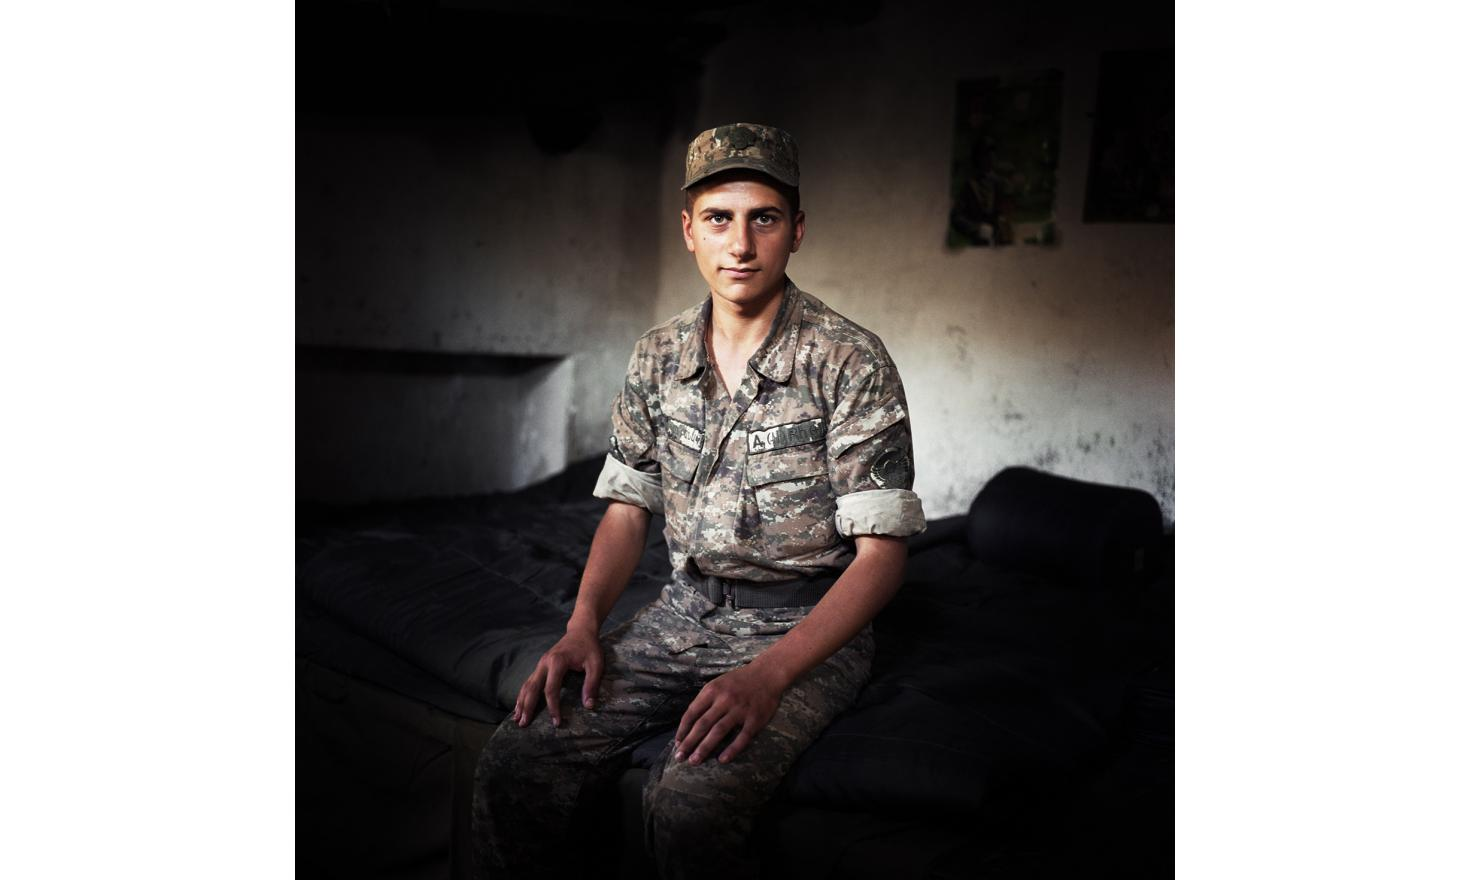 A young soldier on the frontline during his service in 2011